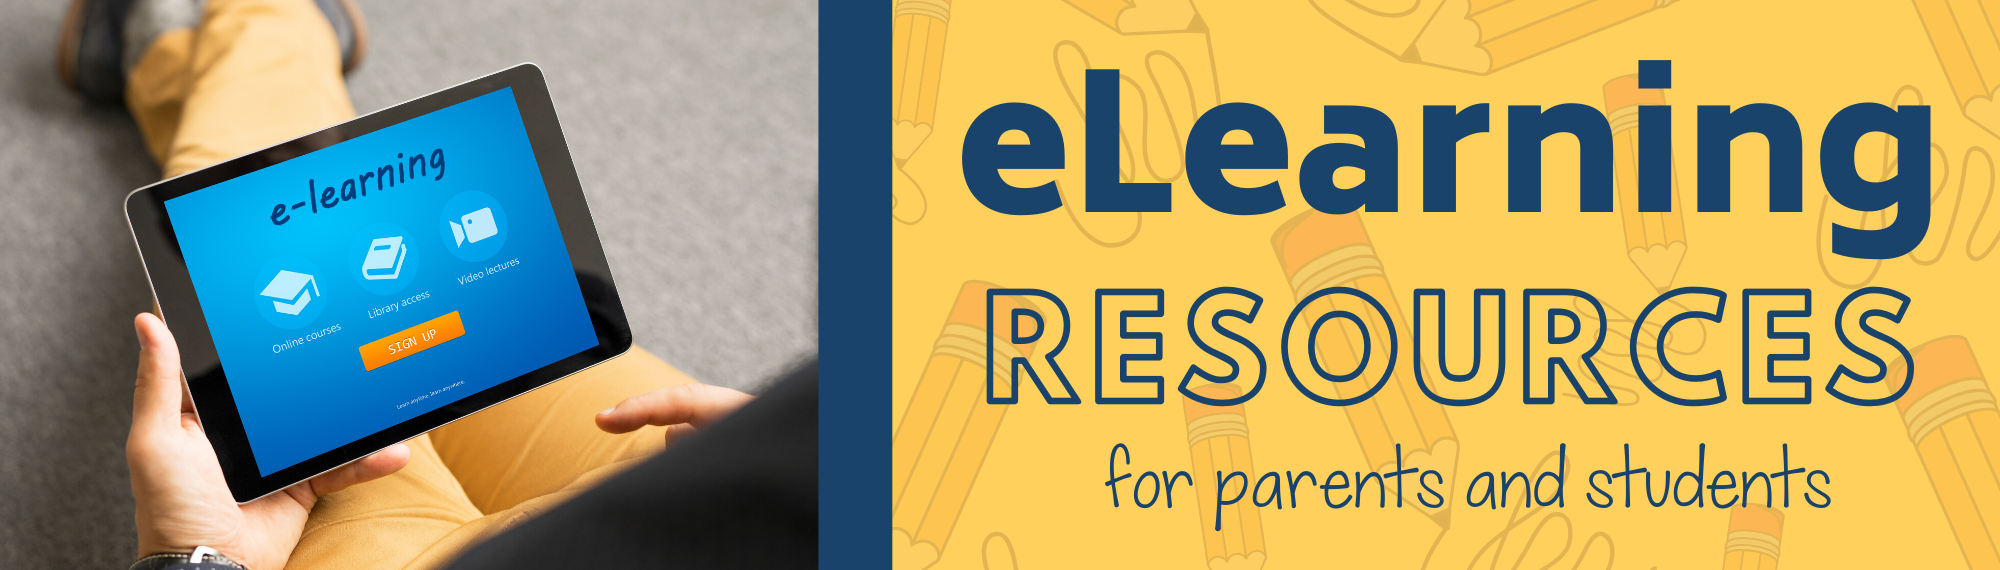 eLearning Resources for students and parents